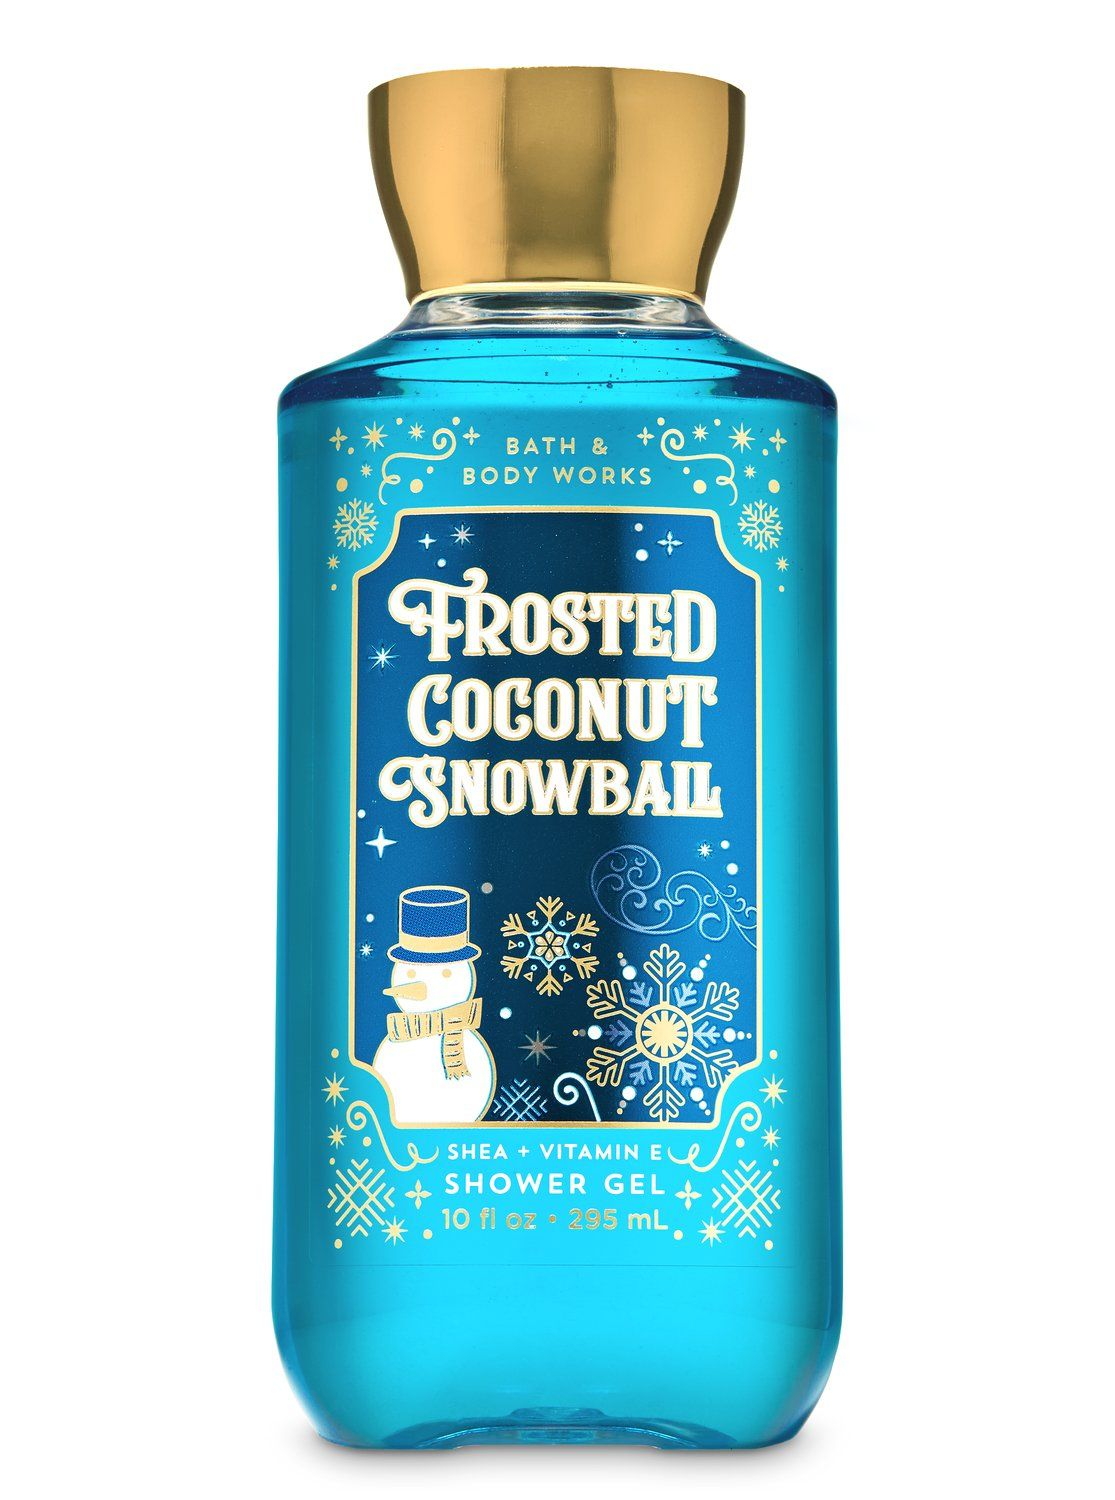 Frosted Coconut Snowball Shower Gel Bath And Body Works Big Clearancesale 3days Only All 1 99 Bath And Body Works Shower Gel Bath N Body Works